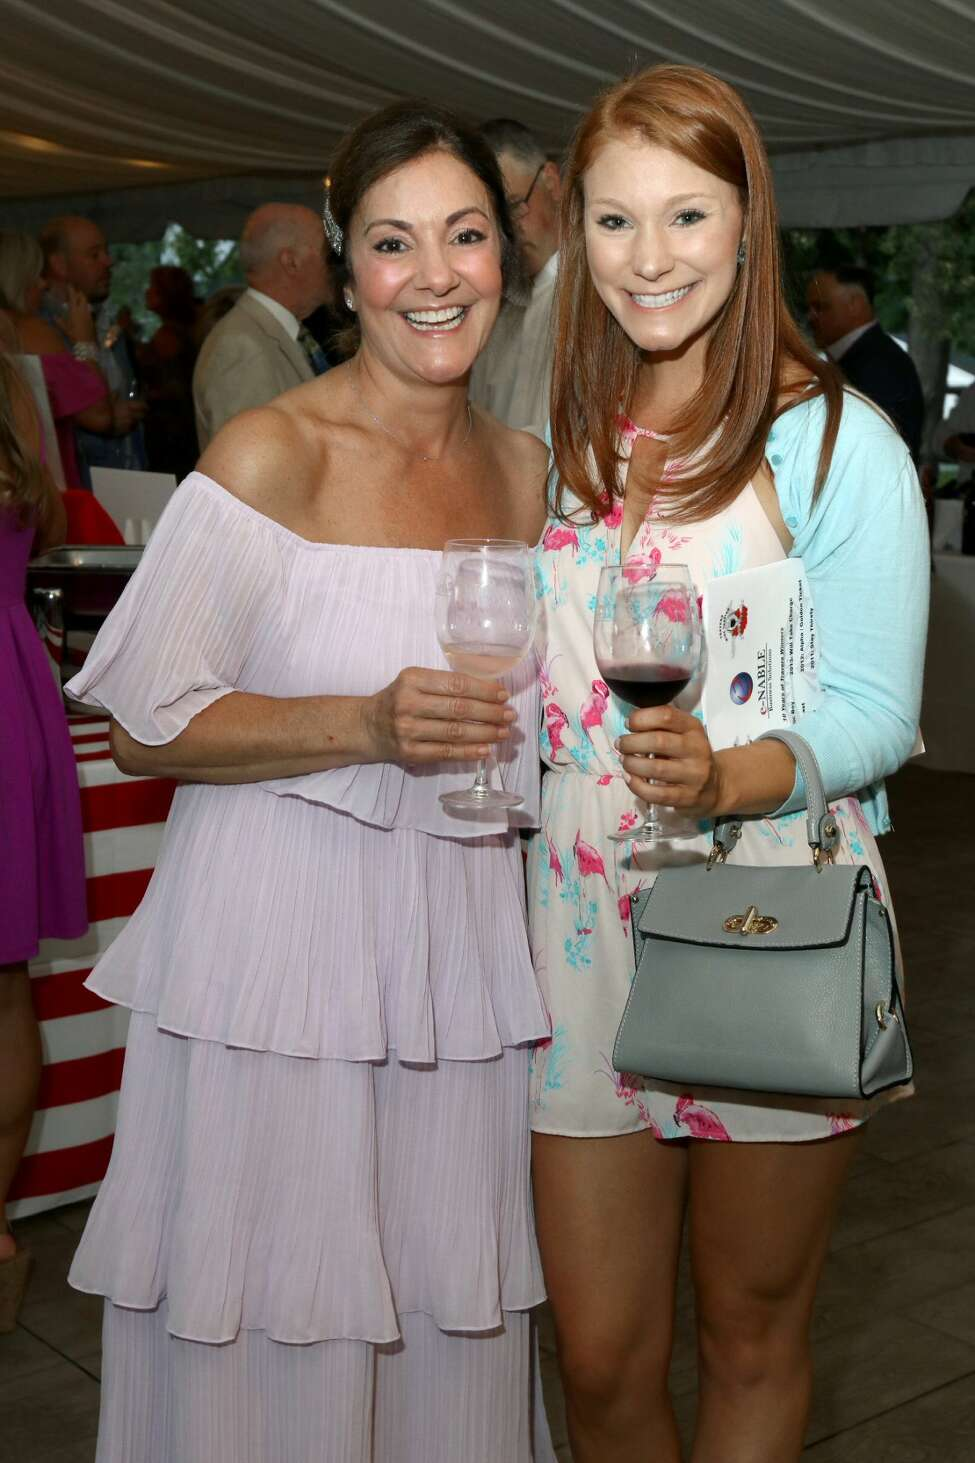 Were you seen at the 21st Annual Travers Wine Tasting to benefit LifePath, formerly Senior Services of Albany, at The Lodge at Saratoga Casino Hotel in Saratoga Springs on Friday, August 23, 2019?